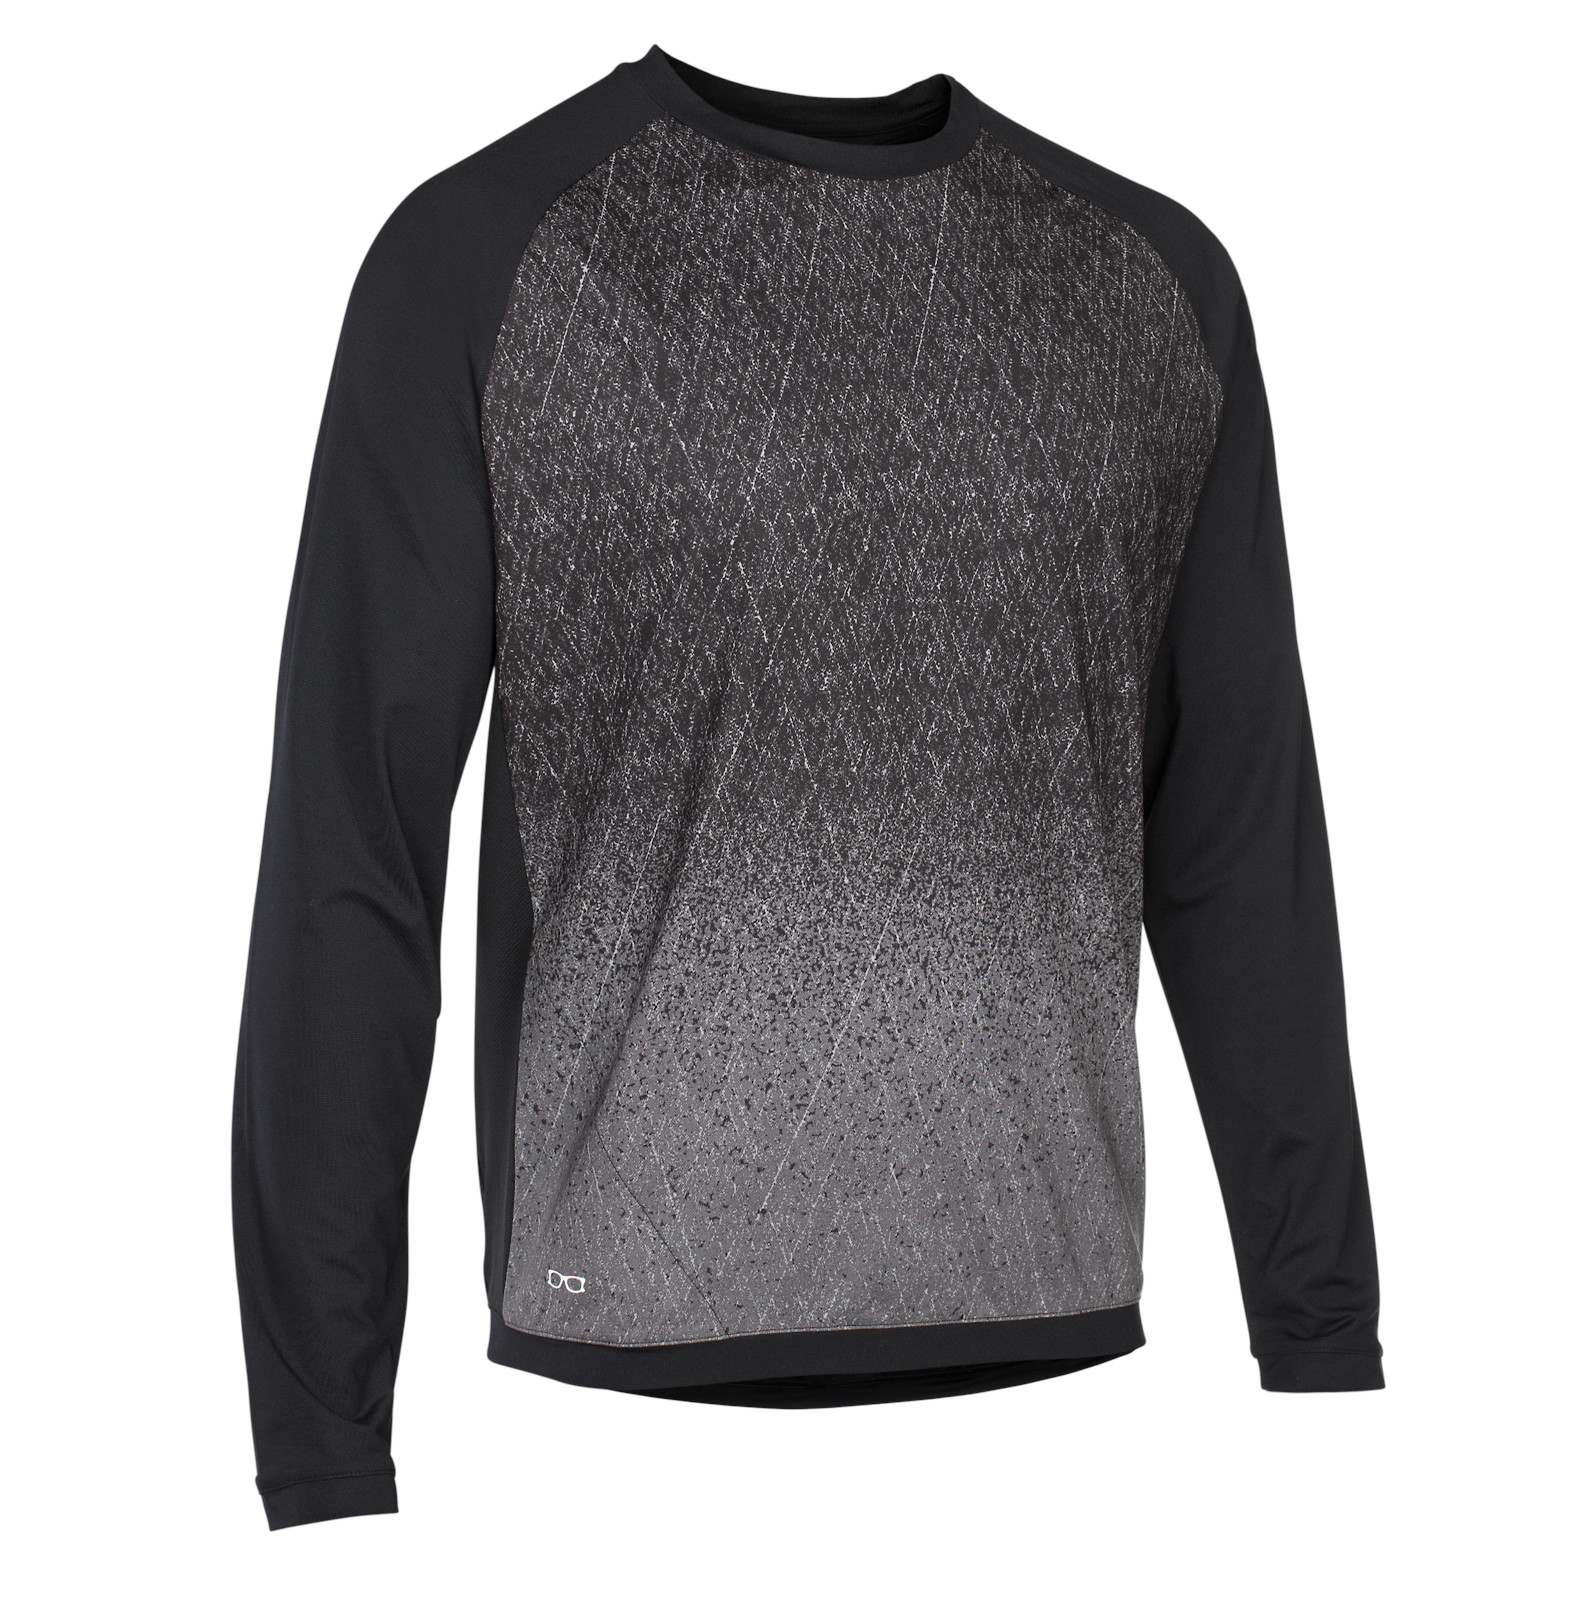 ION Traze Amp Long-Sleeve (black)